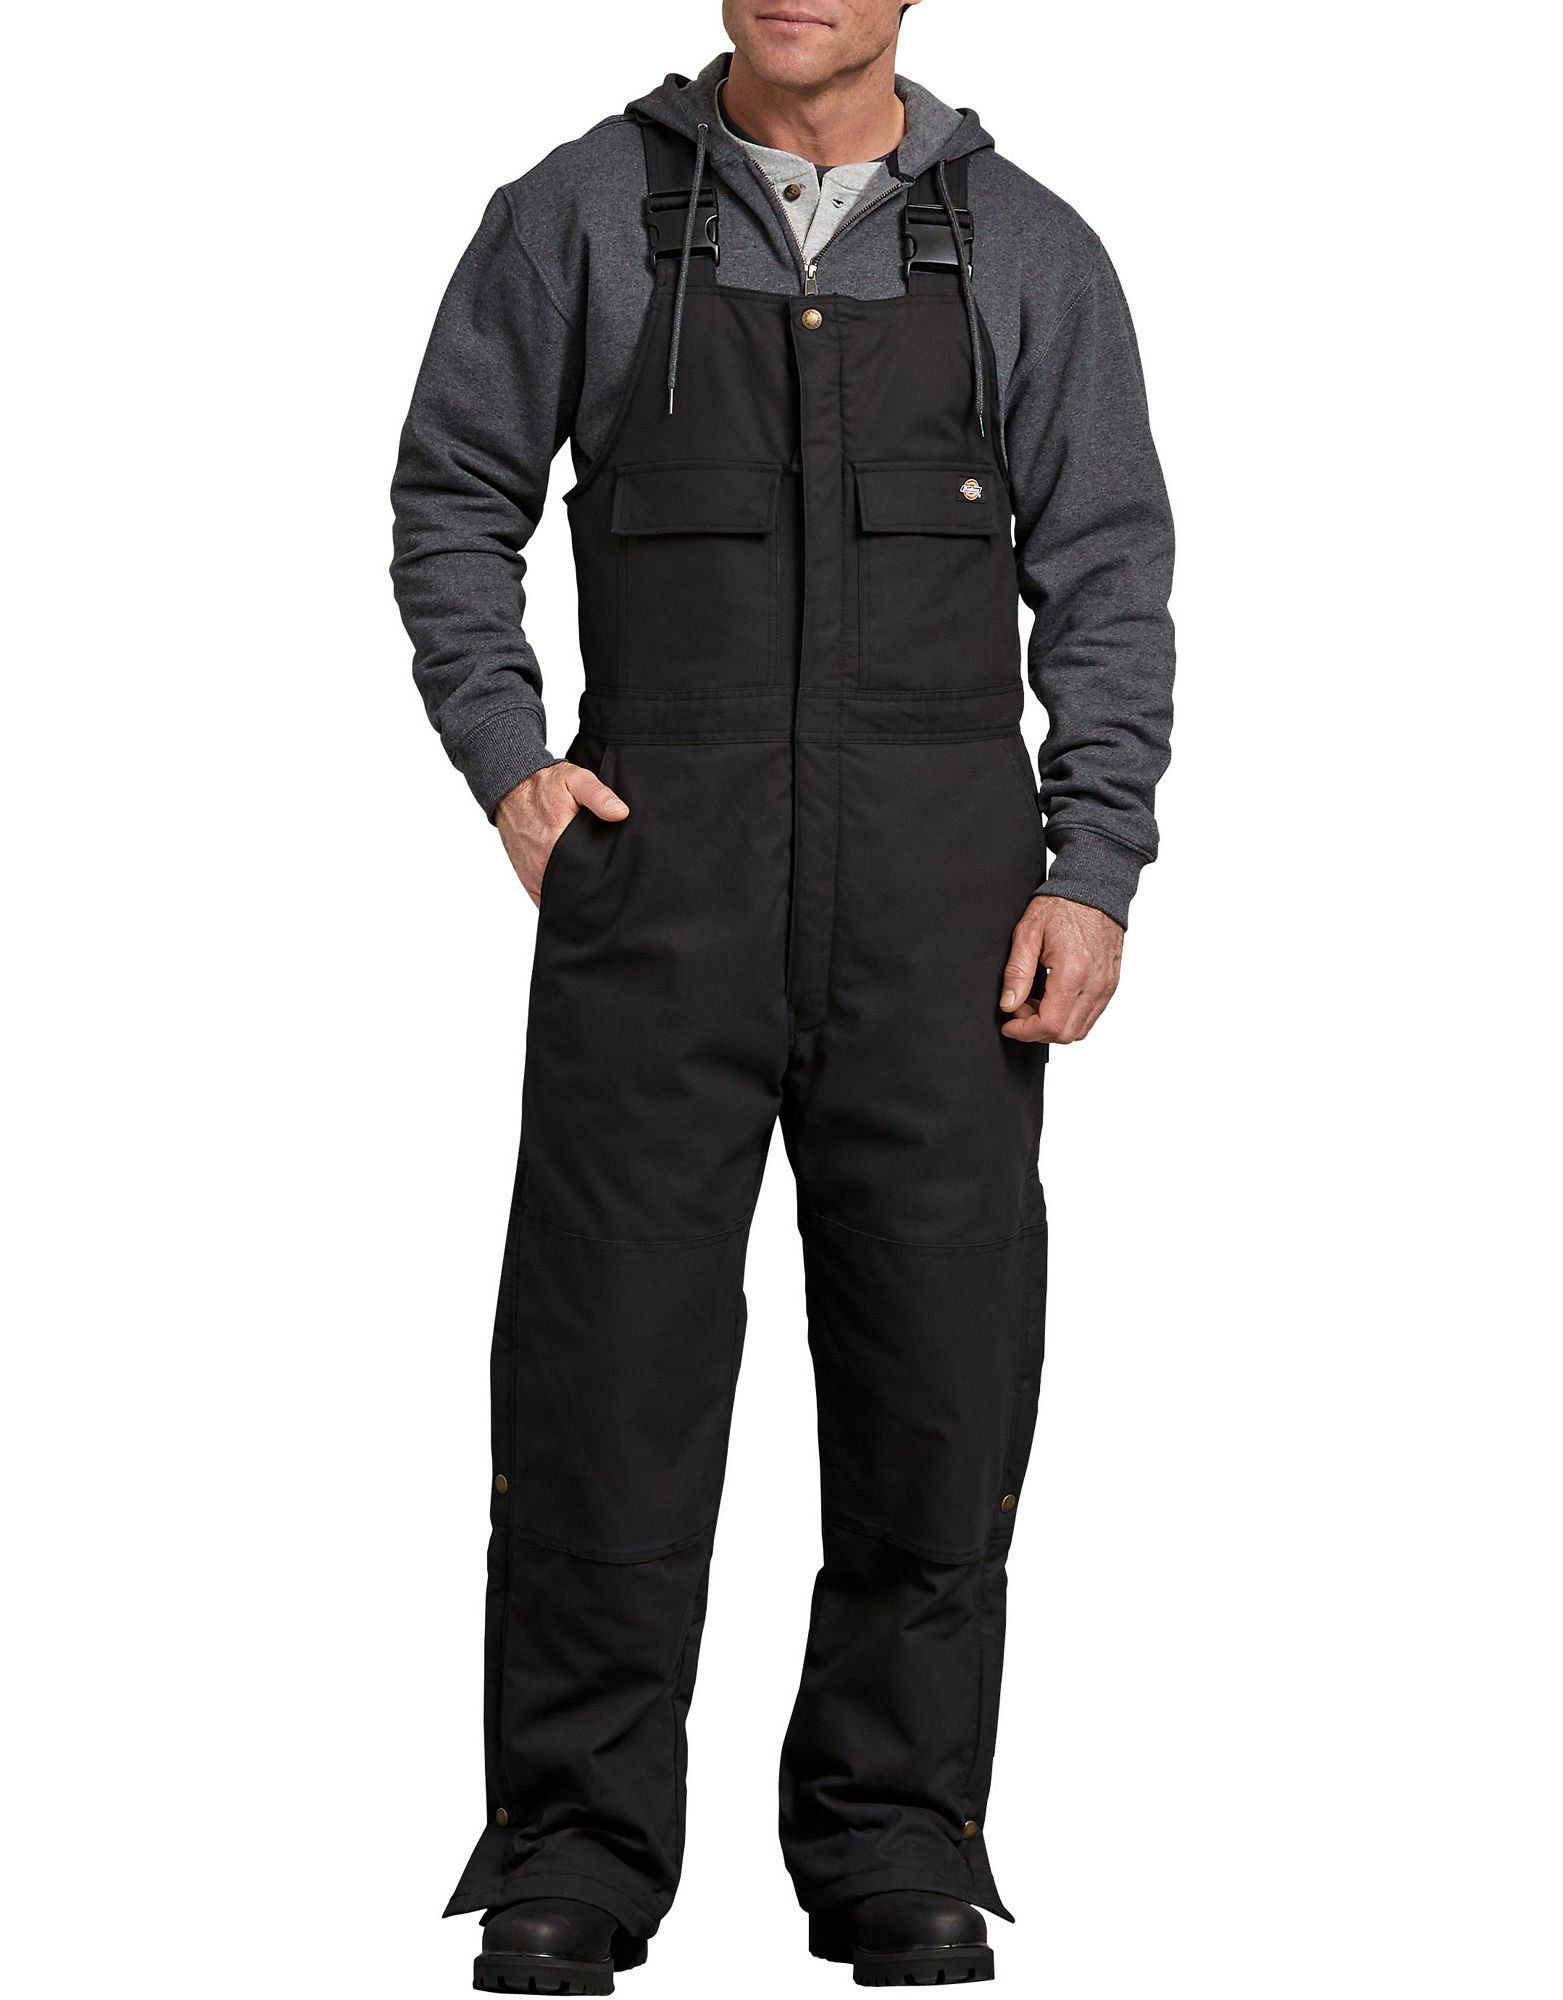 flex sanded duck insulated bib overalls black mens on insulated overalls id=55522